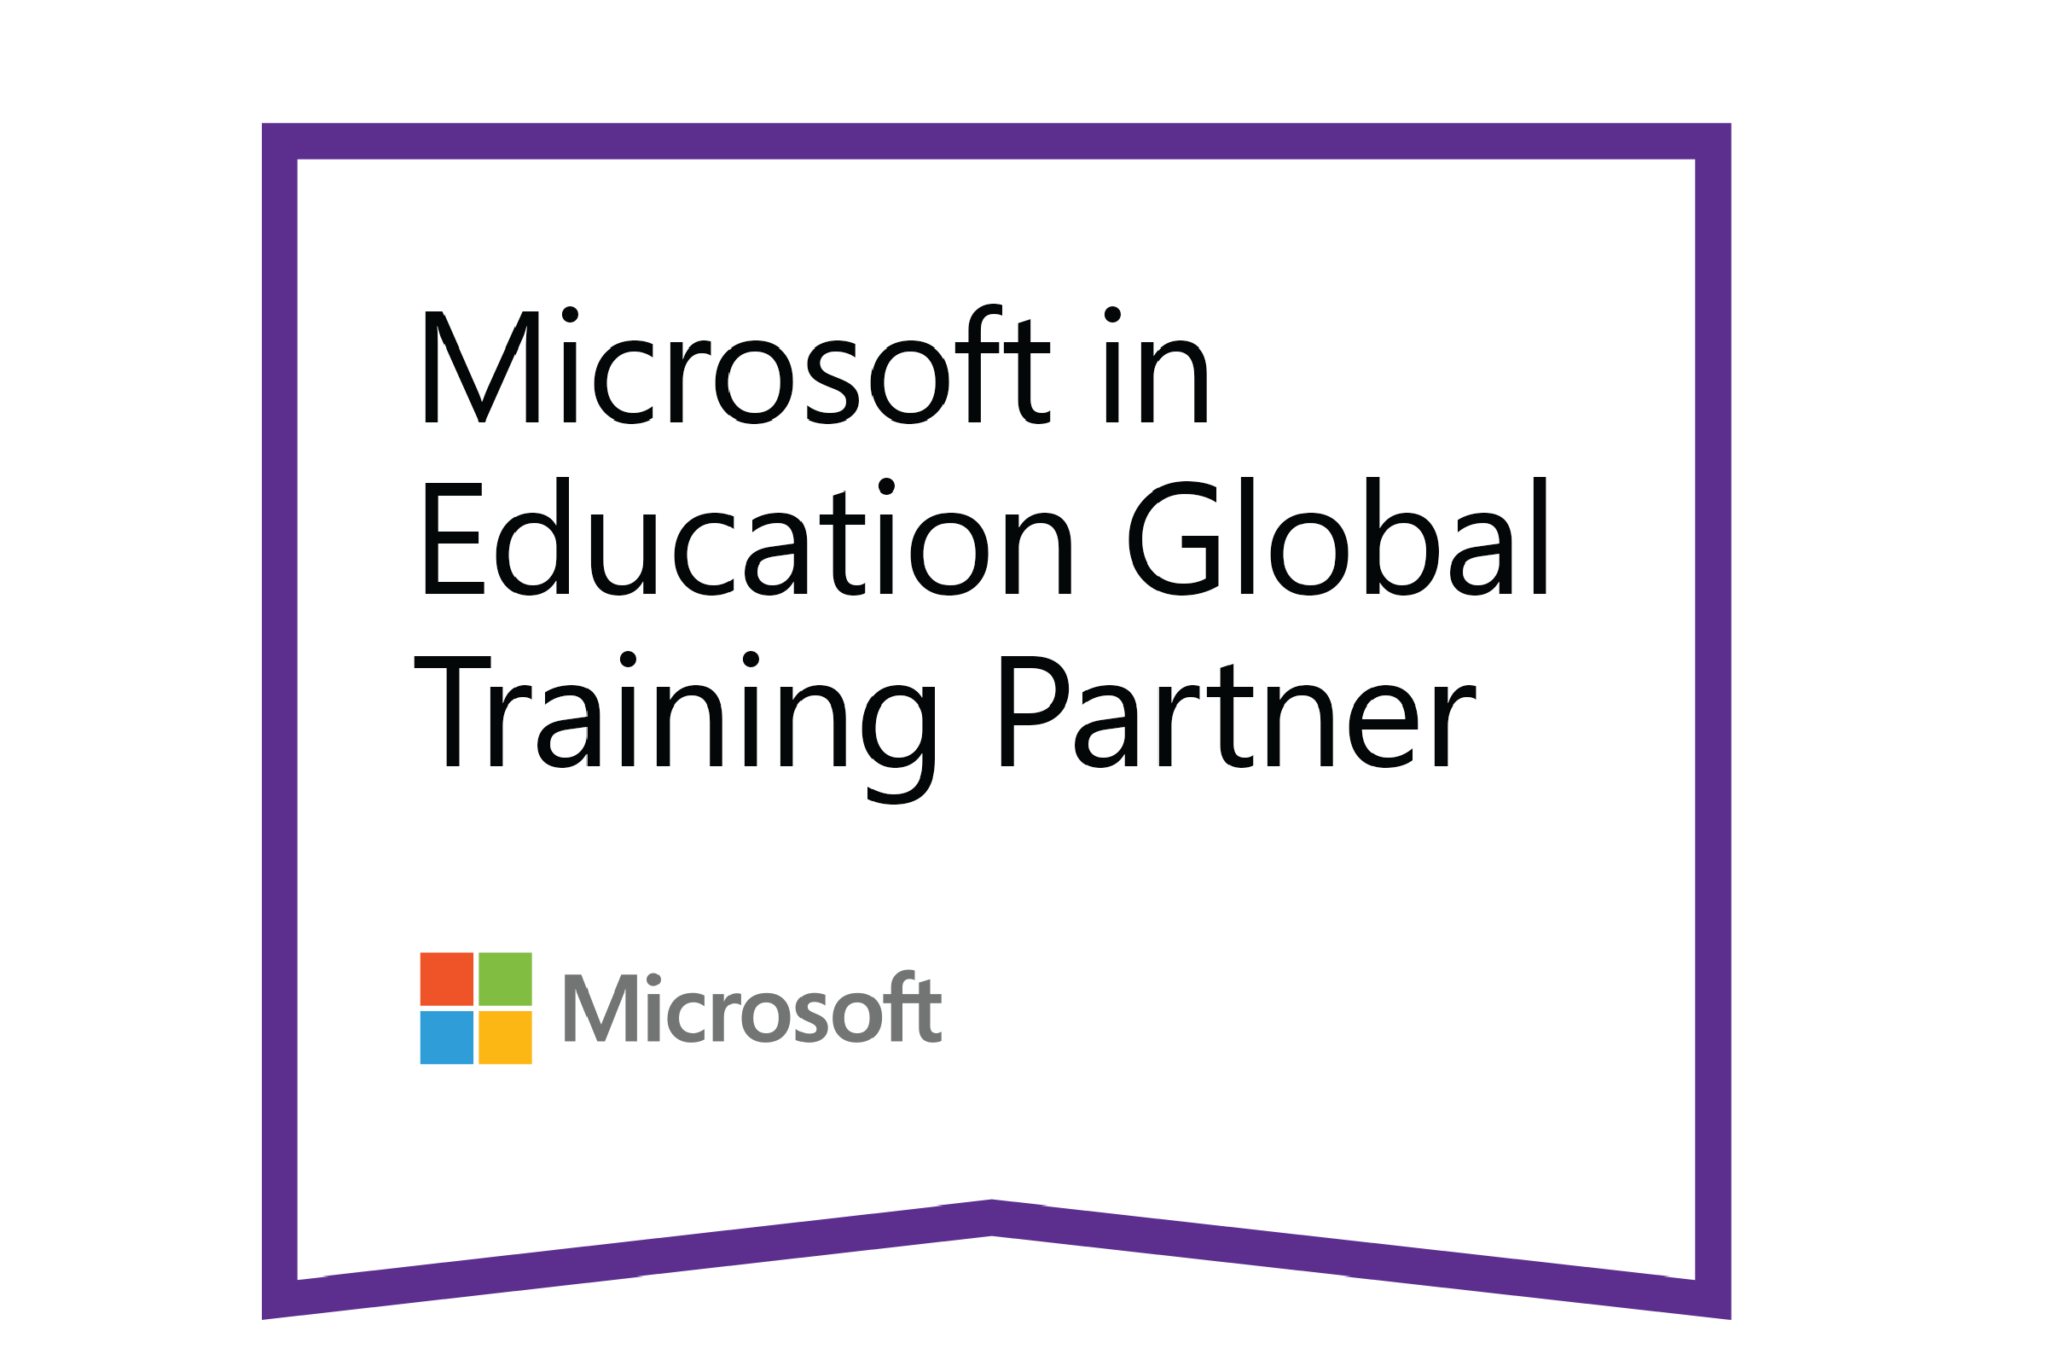 Microsoft Education Global Training Partner